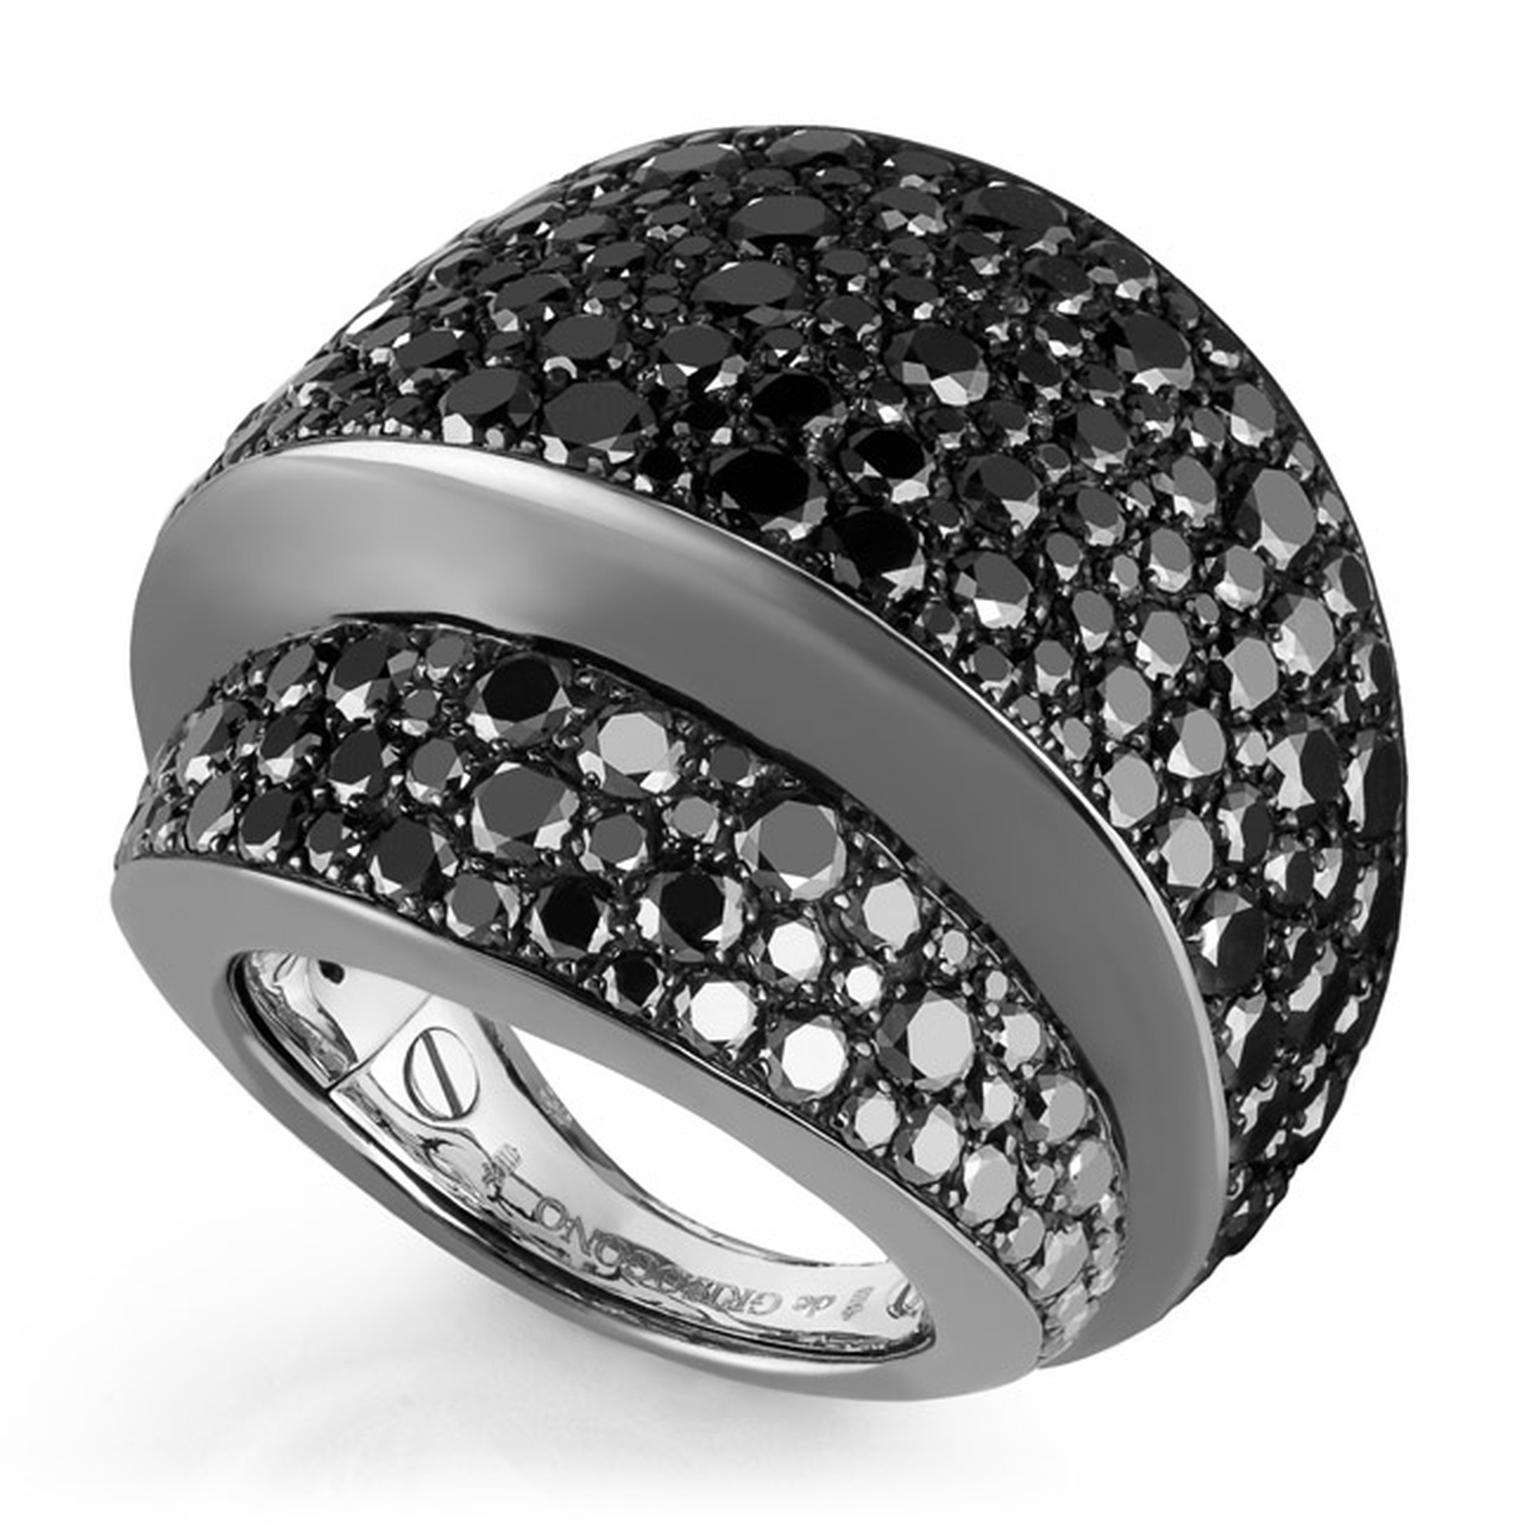 De Grisogono Tubetto diamond ring features smooth curves of black rhodium-plated white gold covered in pavé-set black diamonds.